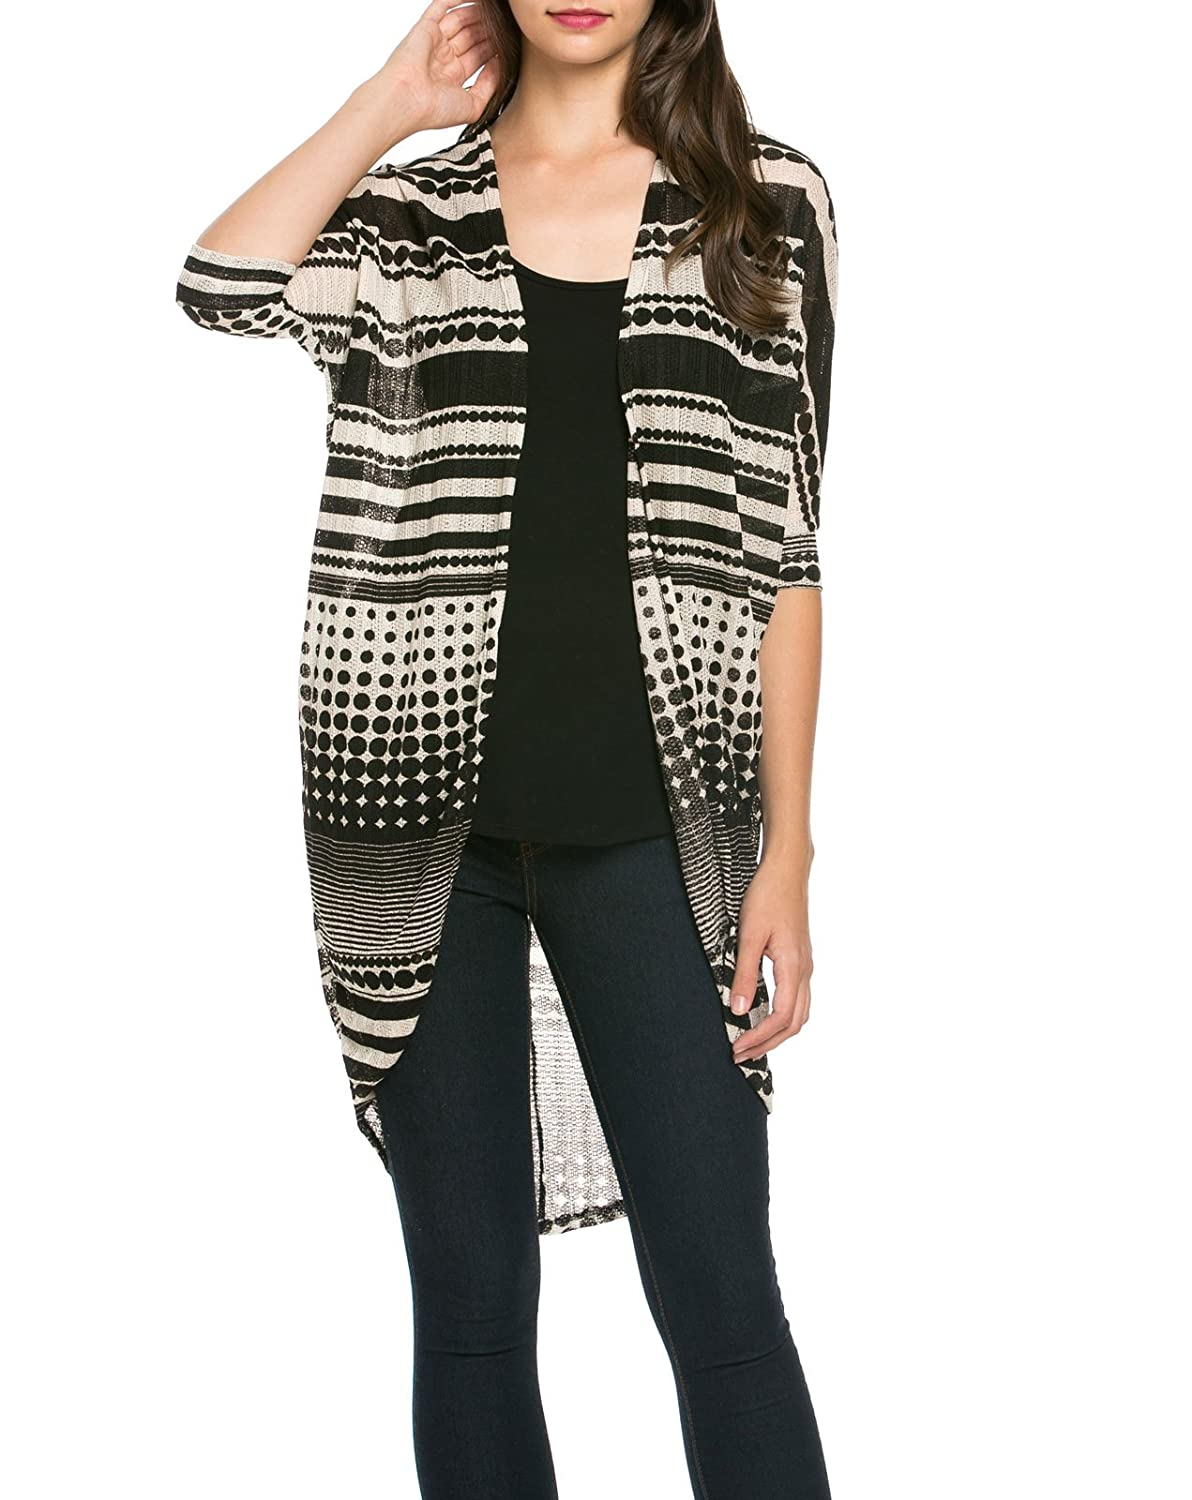 Noble U Women Knit Cardigan Jacket Tops